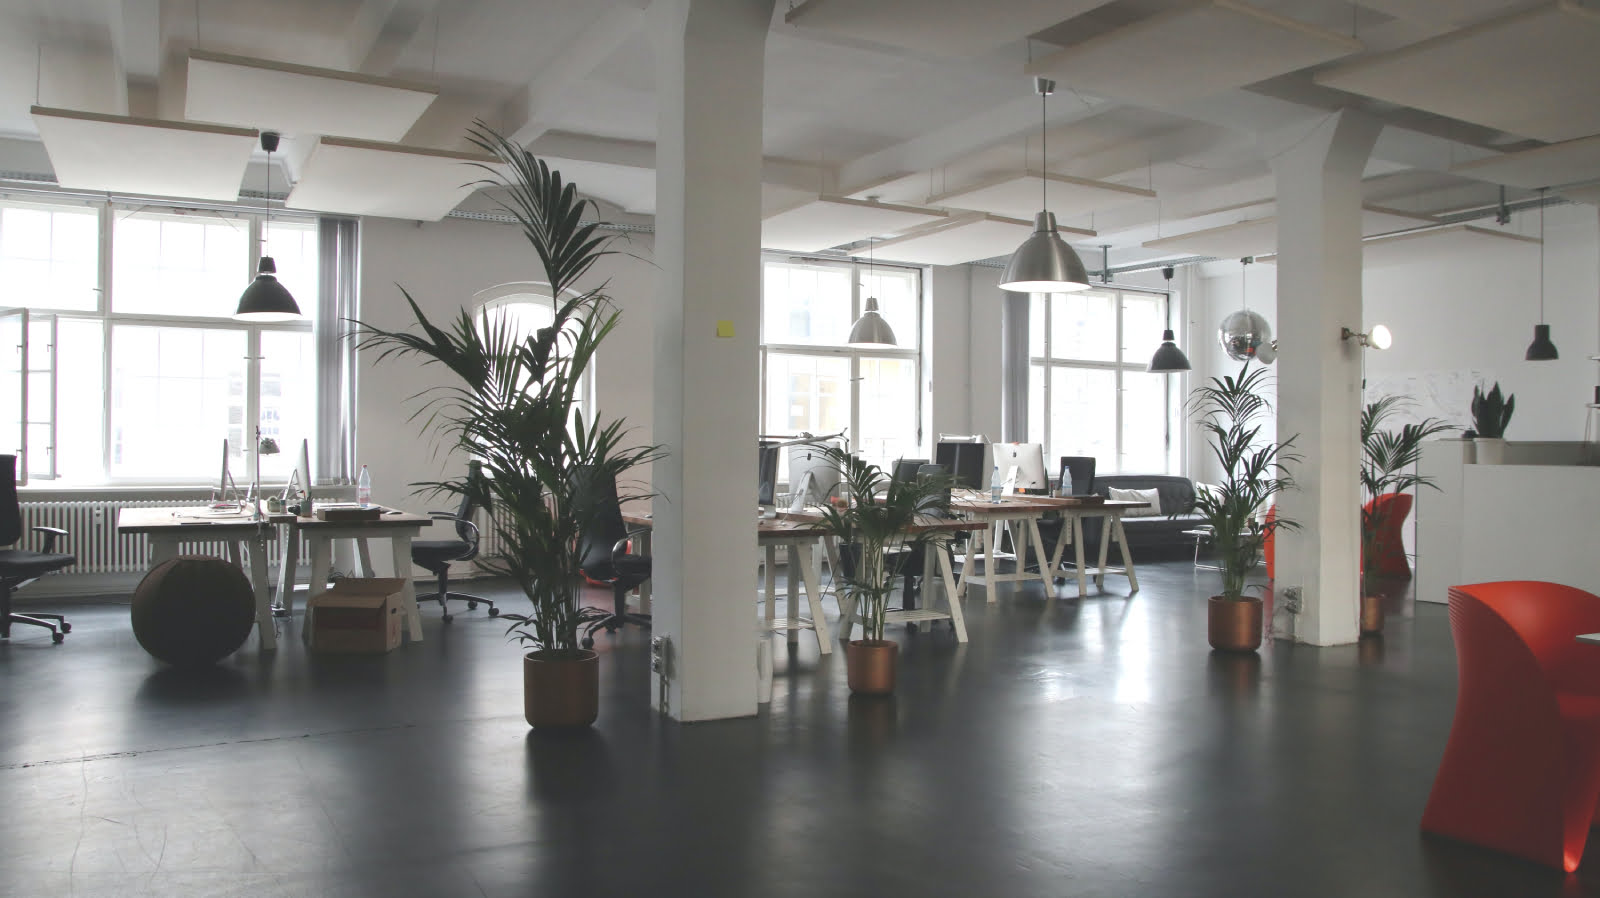 Office with plants blocking noise